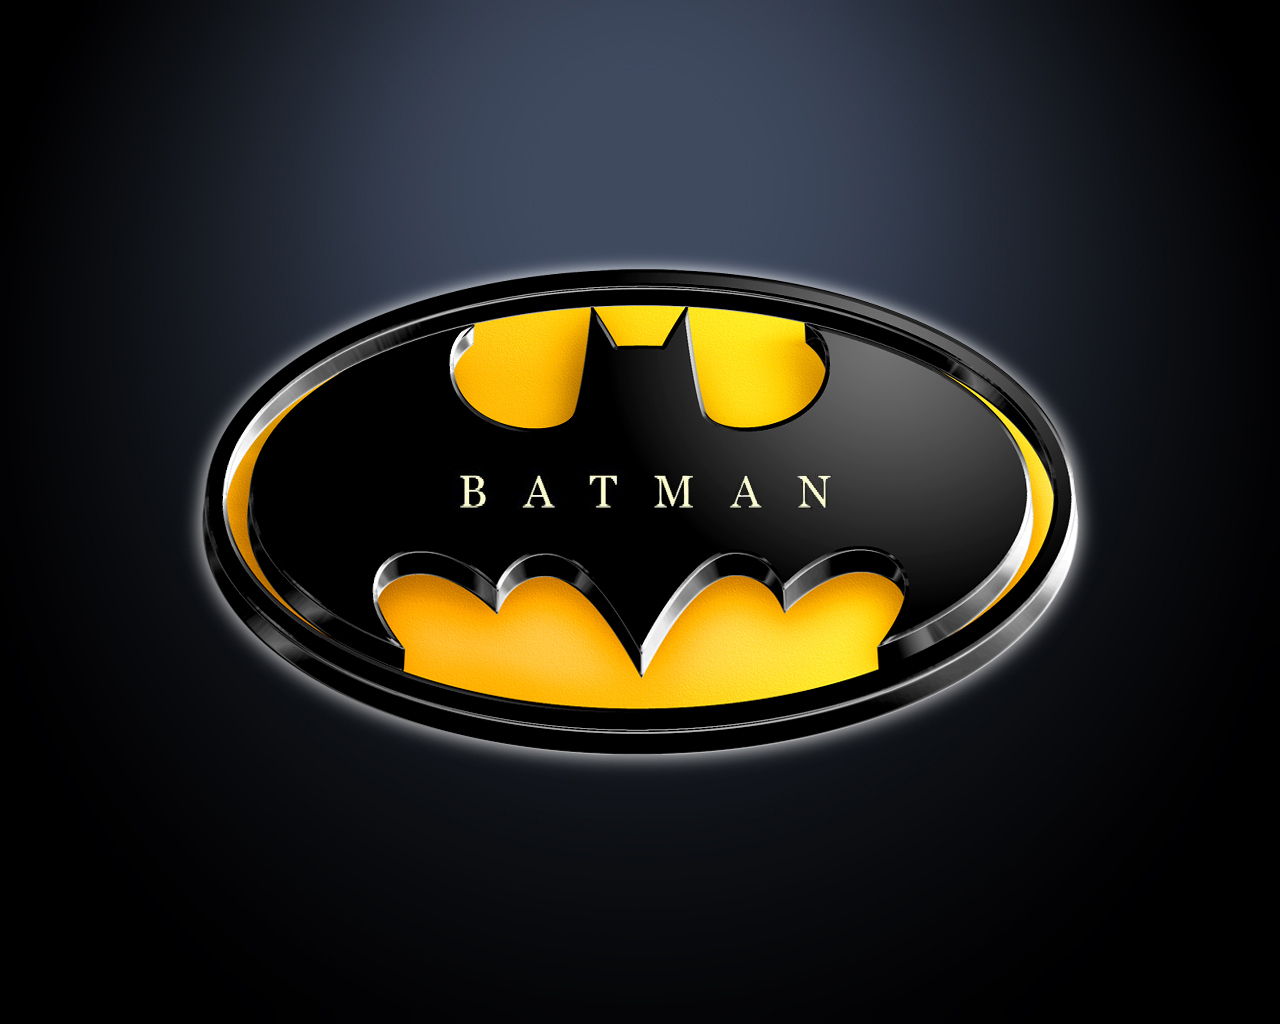 Batman Logo - Batman Wallpaper (9683803) - Fanpop fanclubs